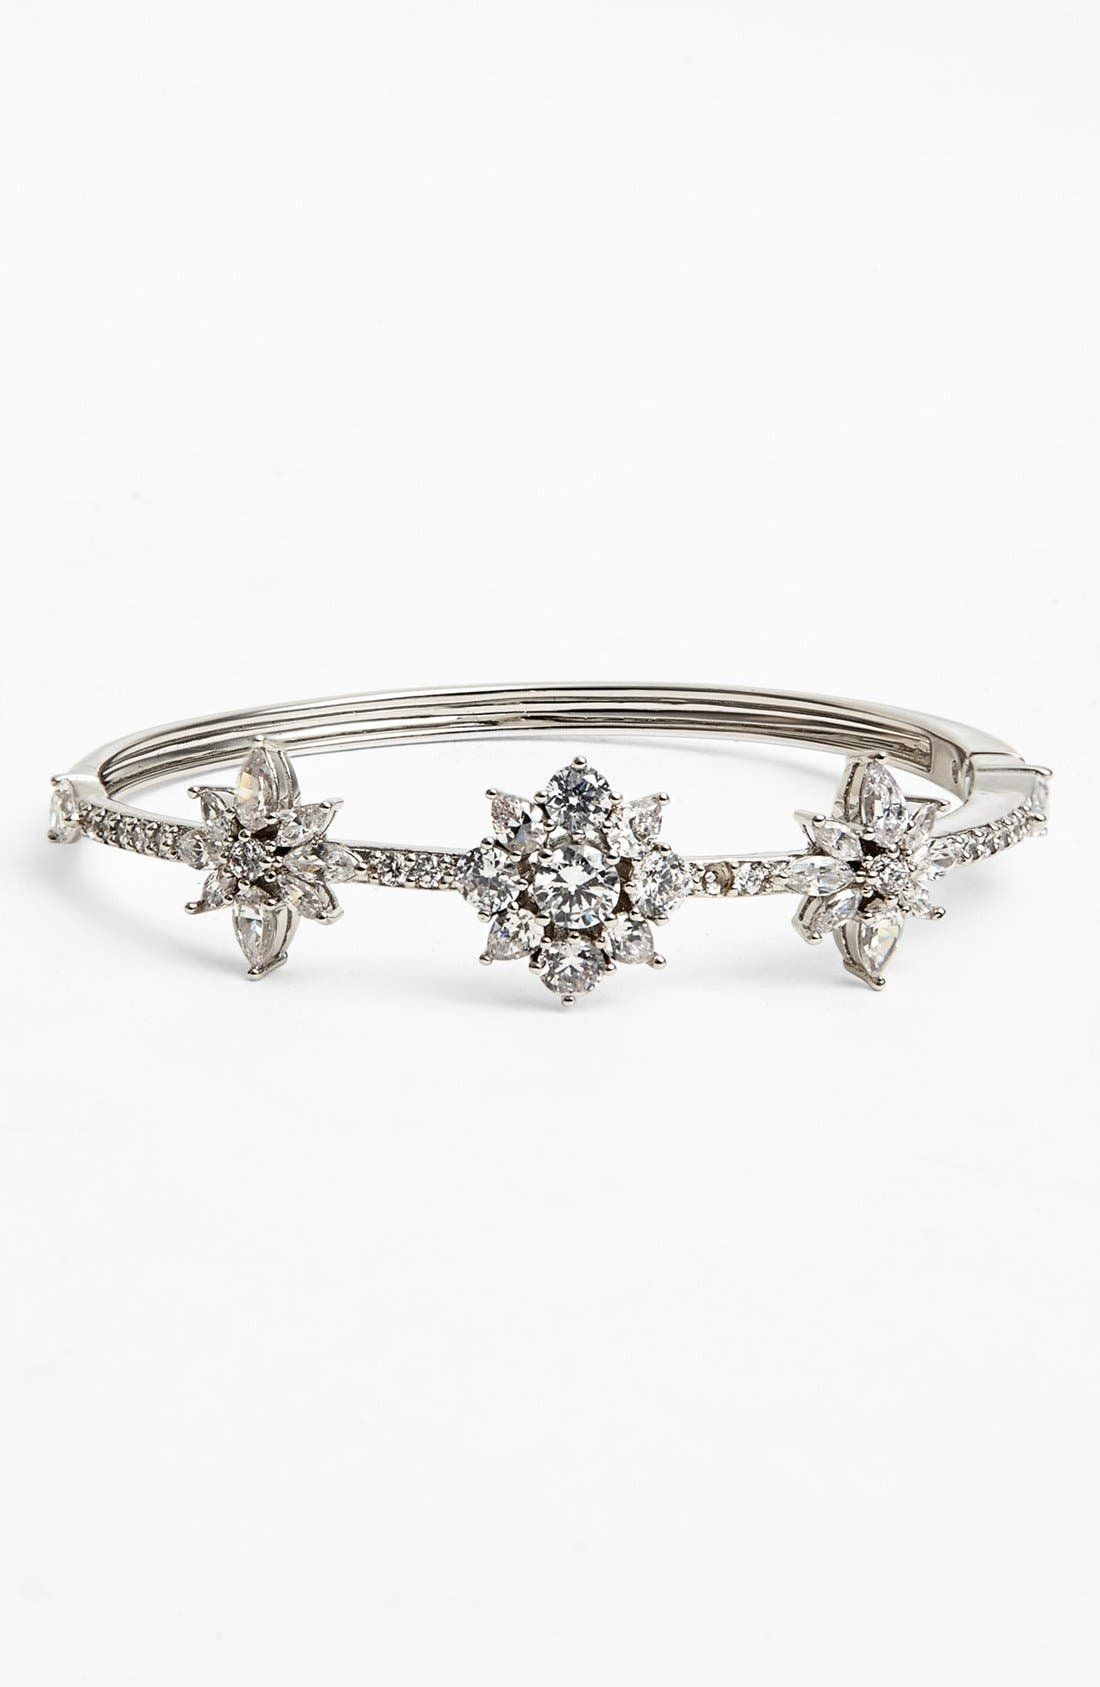 Alternate Image 1 Selected - Nadri 'Flores' Station Bangle Bracelet